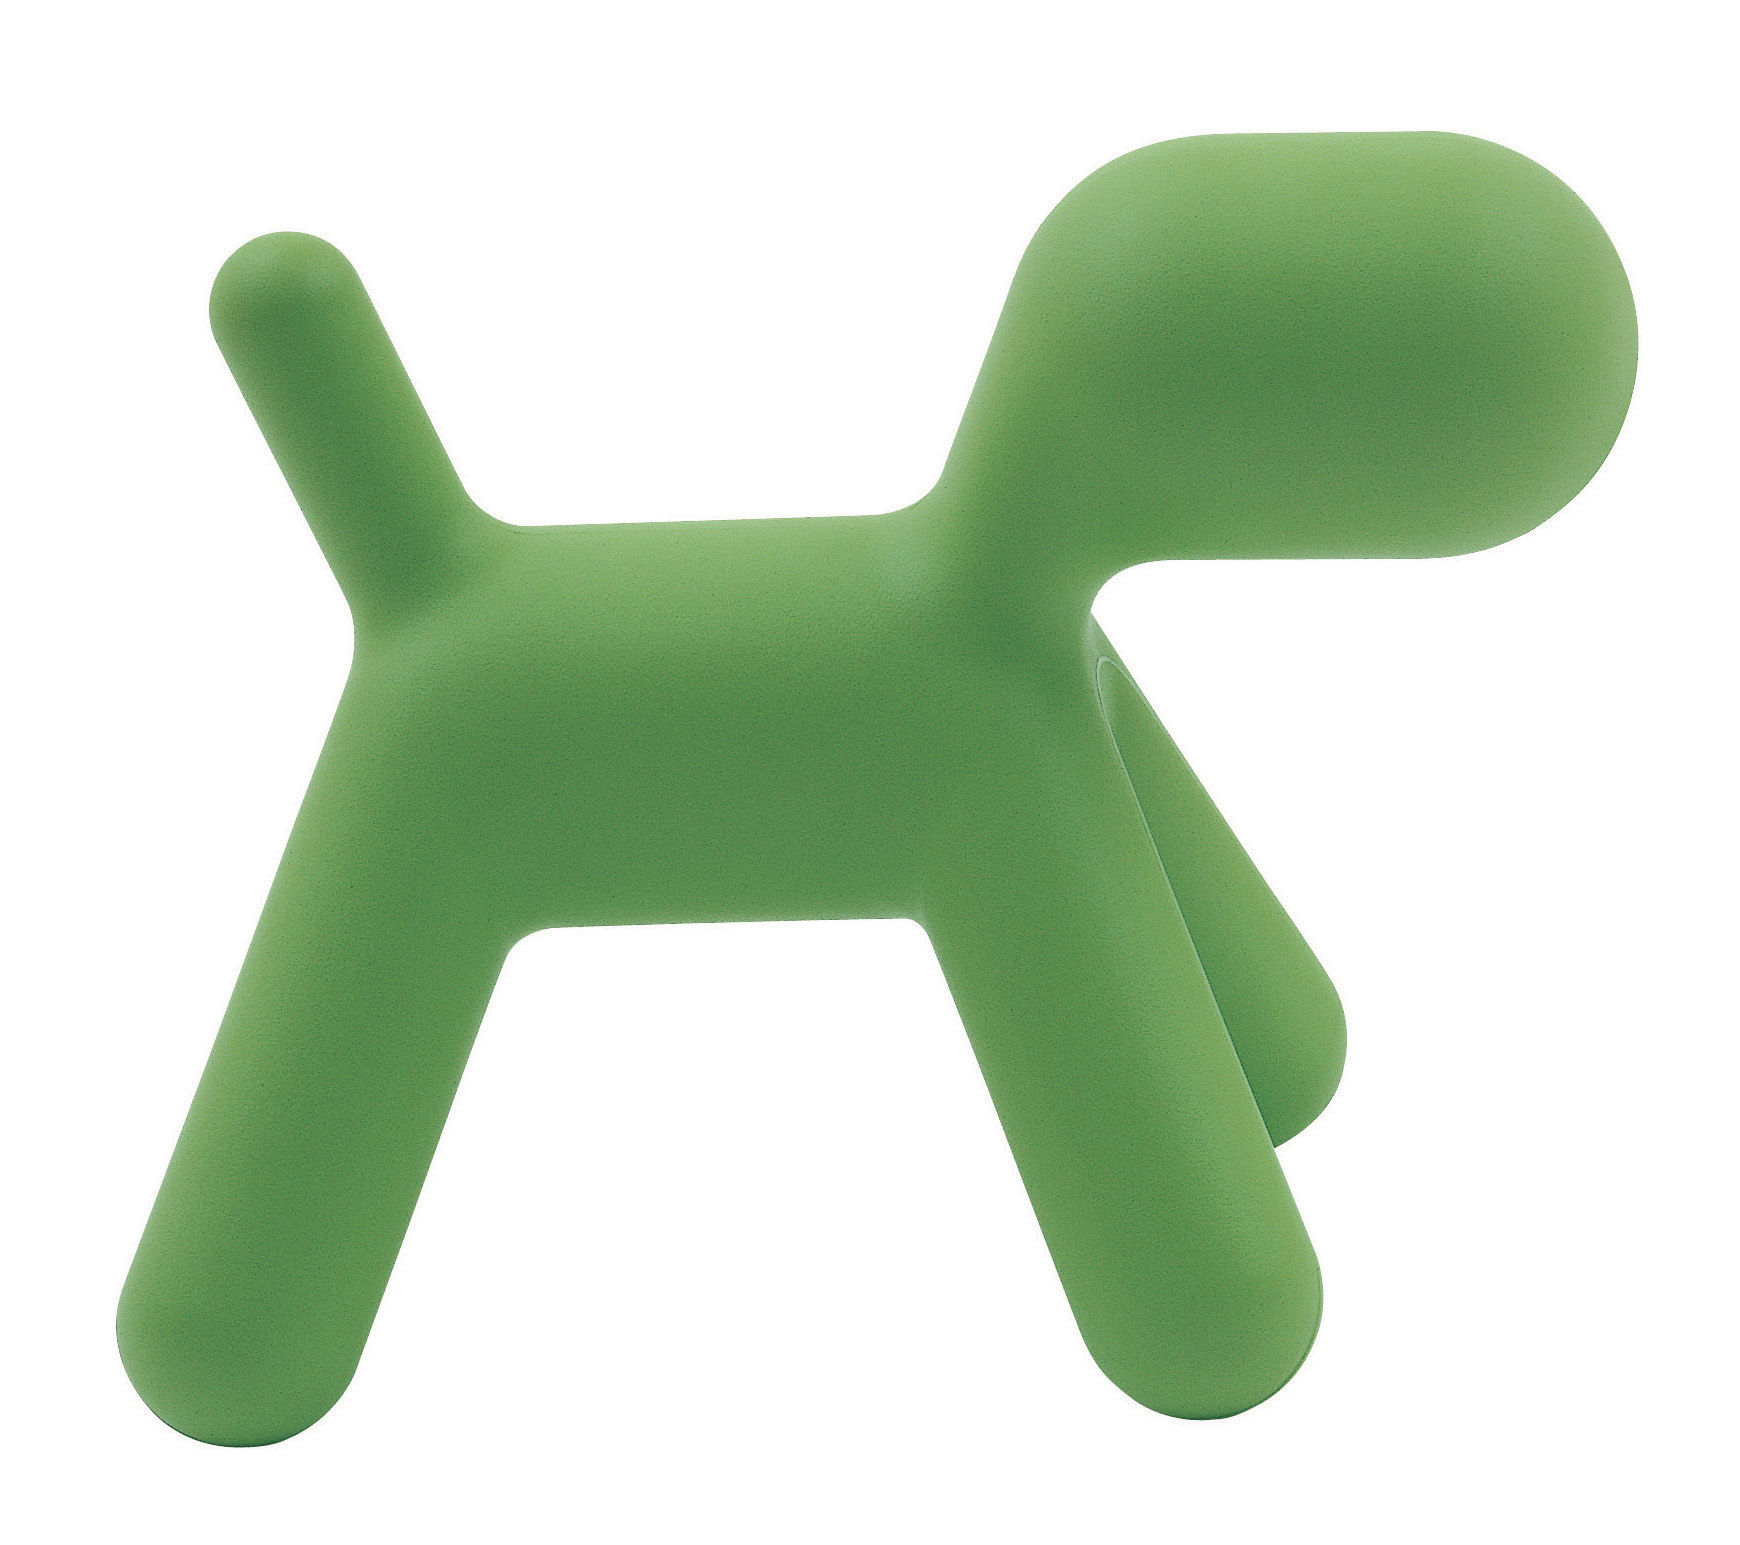 Mobilier - Mobilier Kids - Chaise enfant Puppy Medium / L 56 cm - Magis Collection Me Too - Vert mat - Polyéthylène rotomoulé